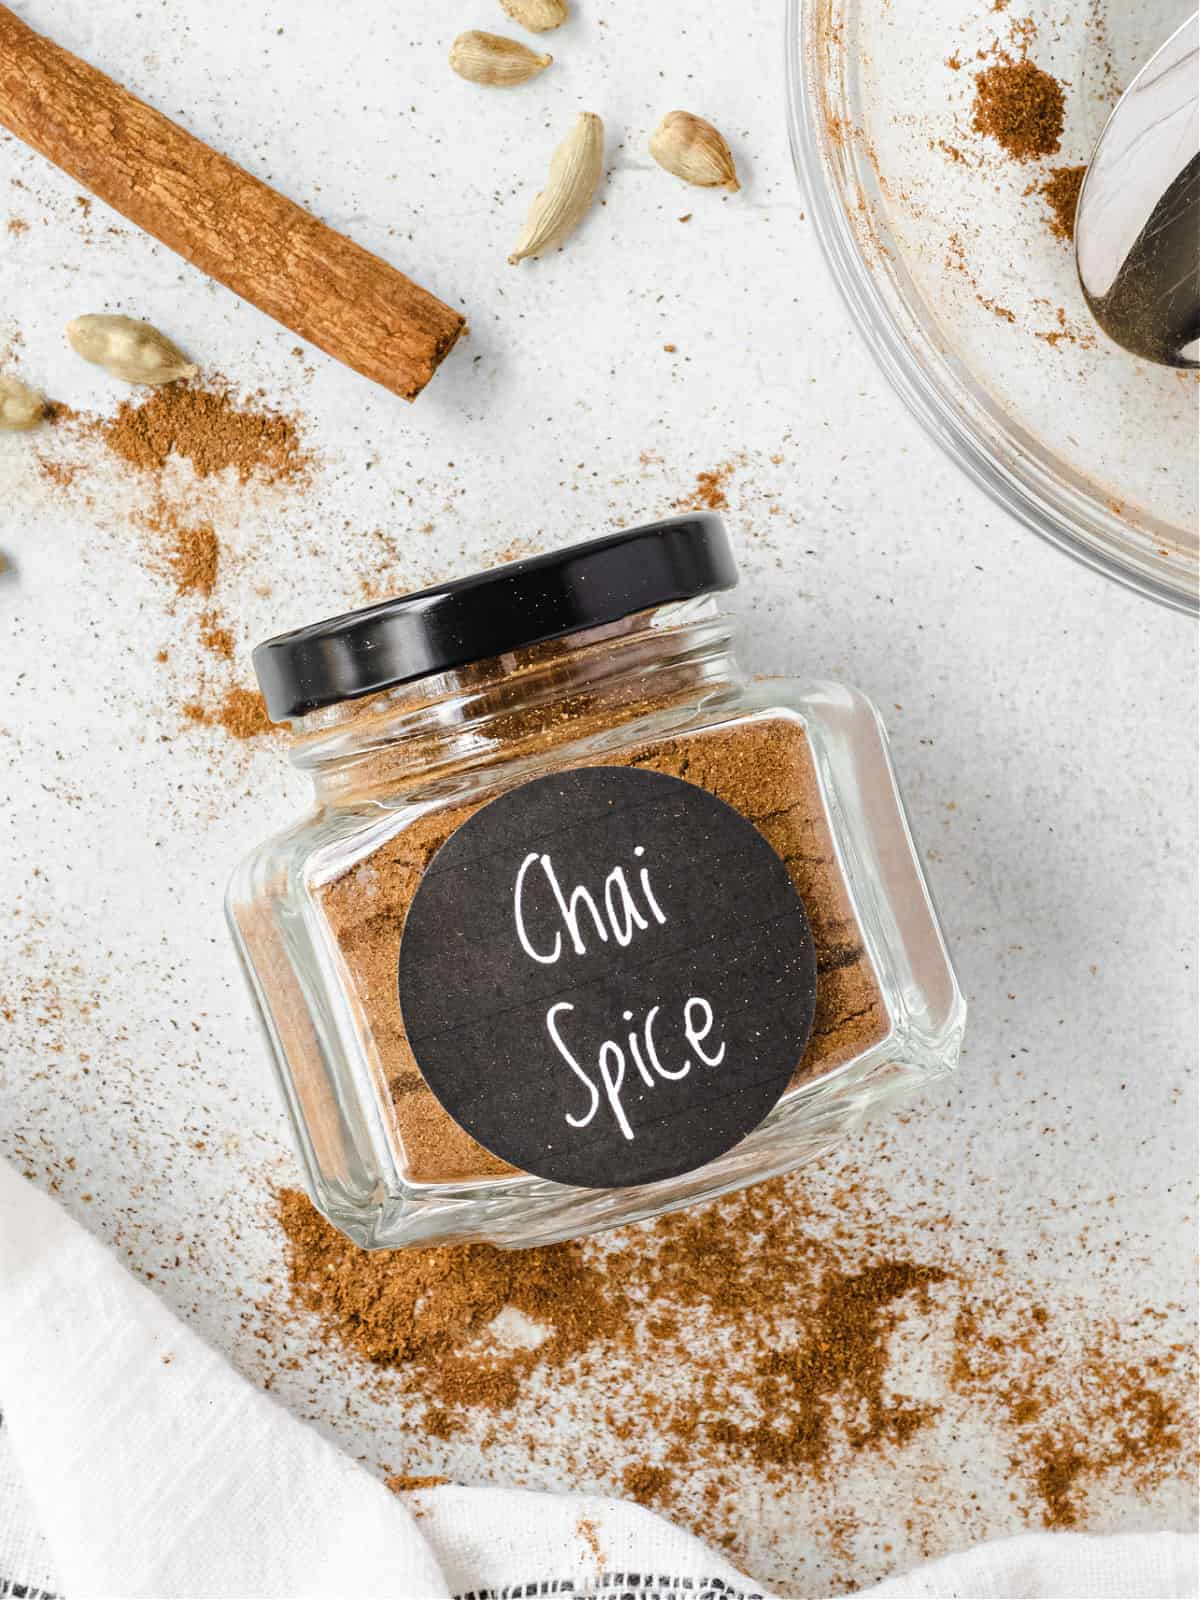 Homemade chai spice mix in a small jar.